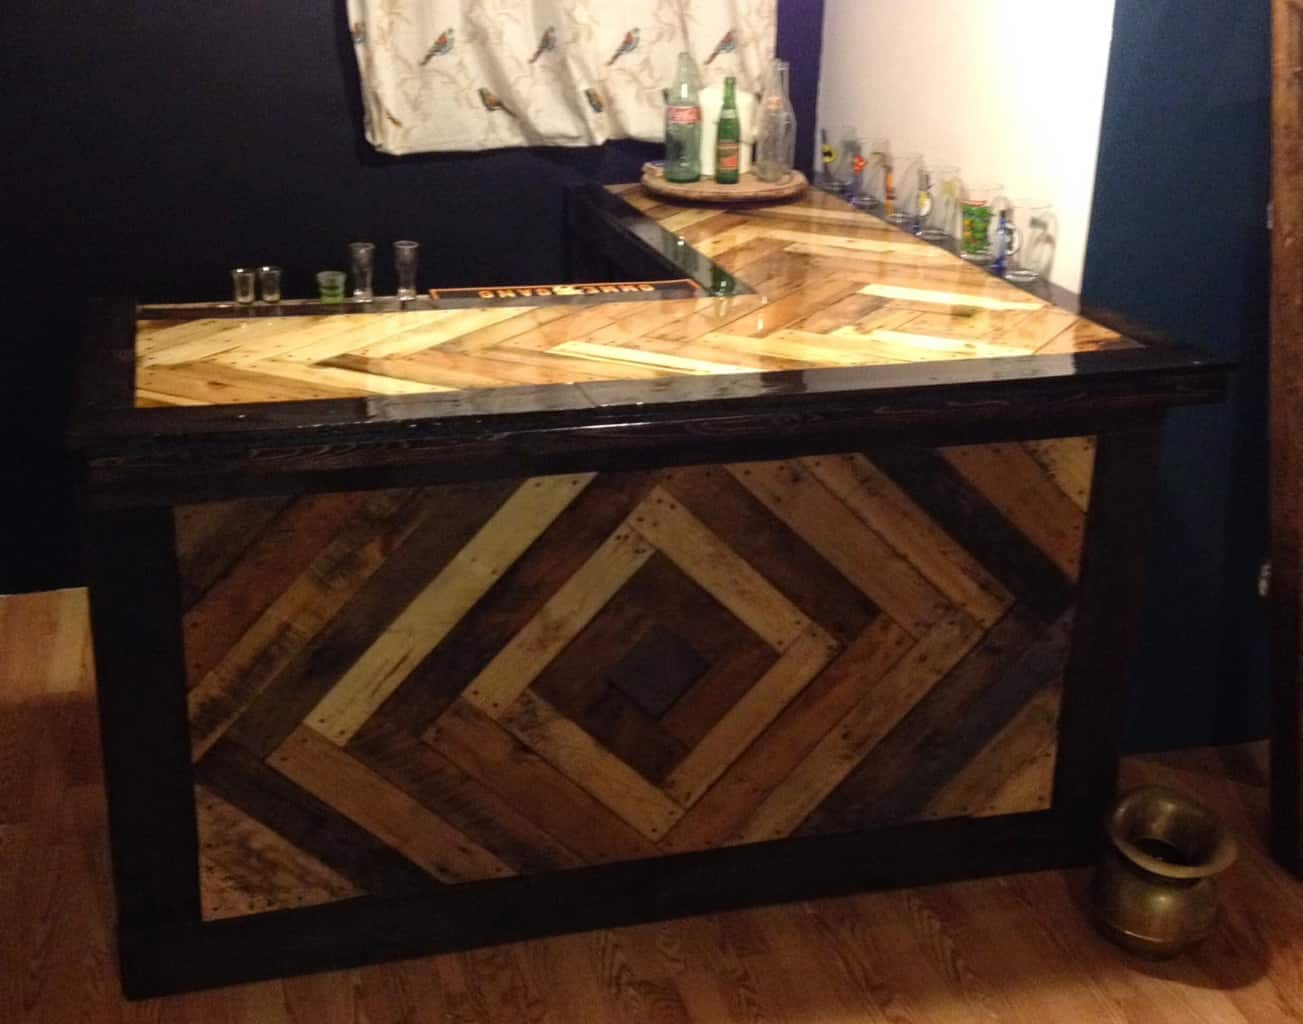 15 Epic Pallet Bar Ideas To Transform Your Space - The Saw Guy on Pallet Design  id=99210